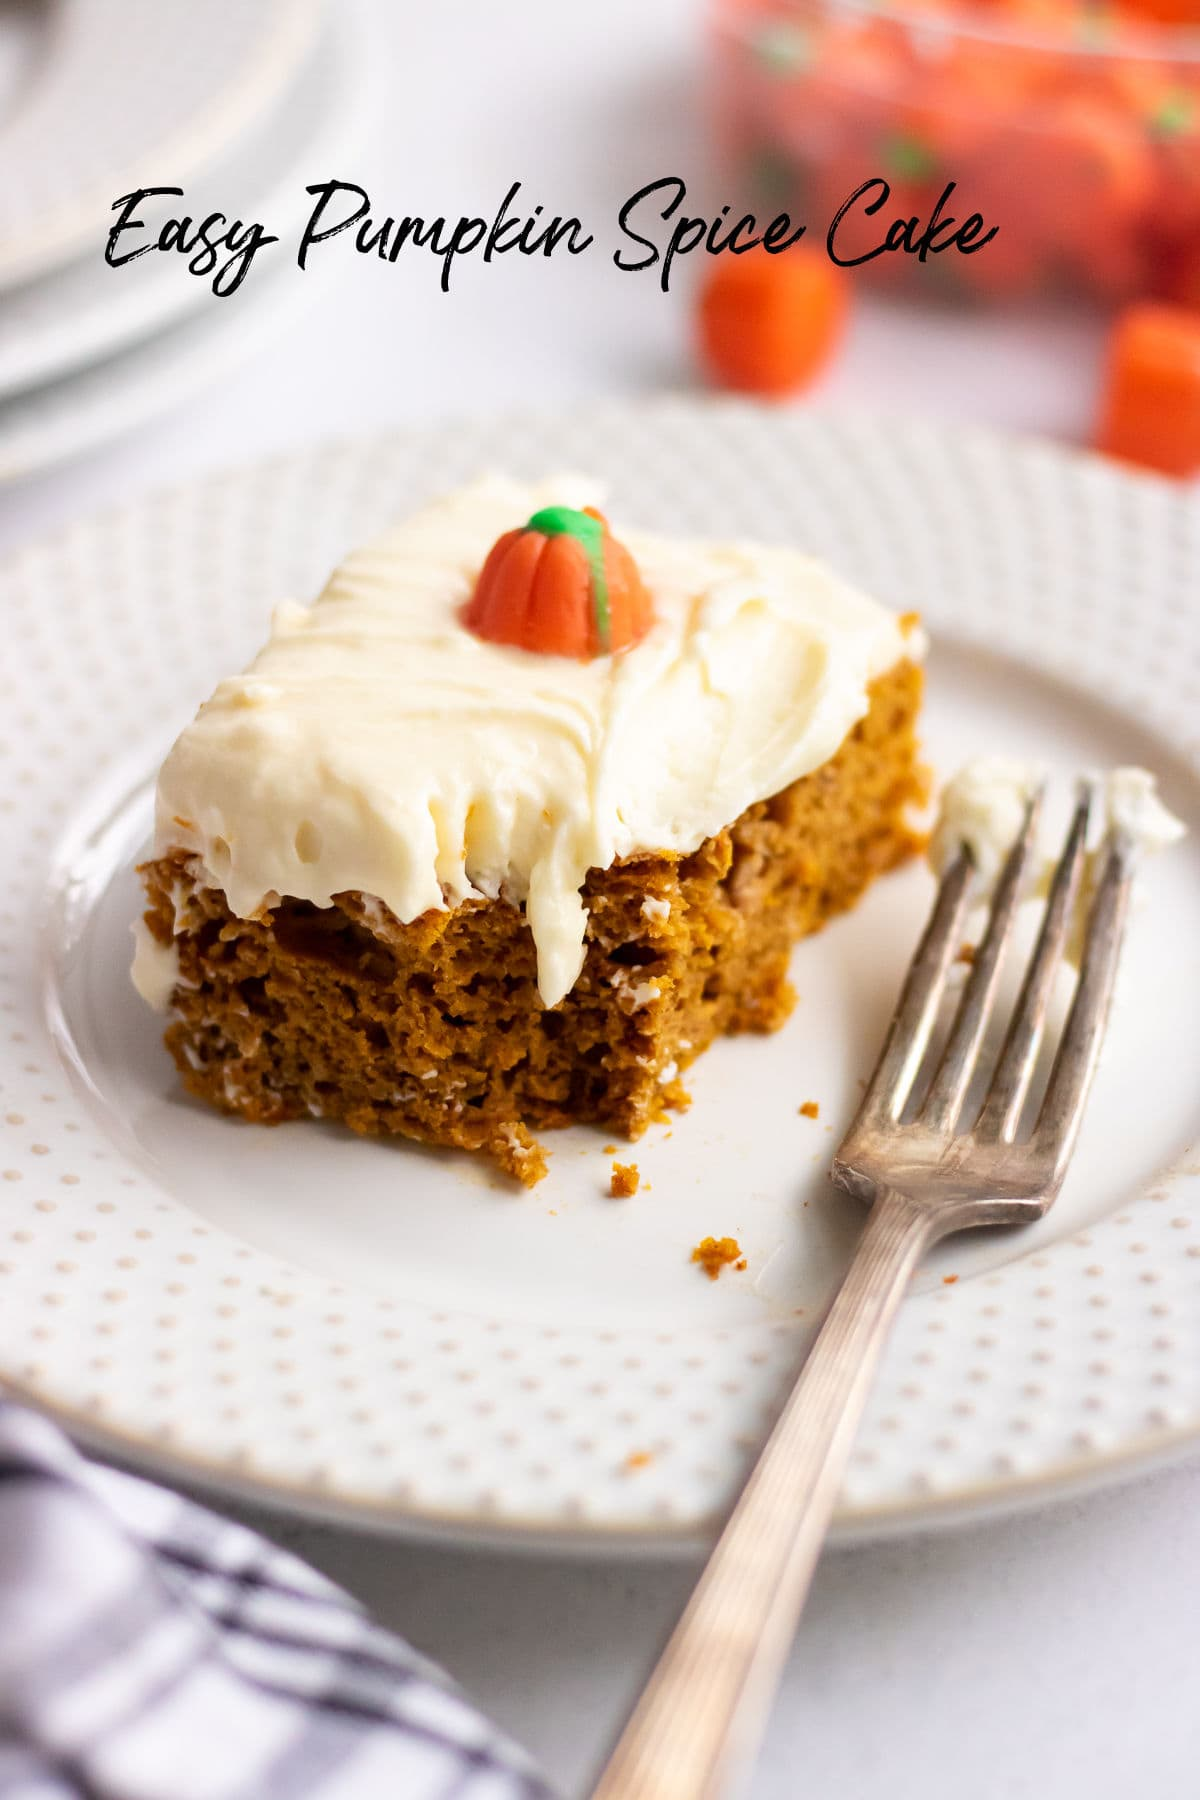 Pumpkin spice cake with a bite taken out. Title text overlay.